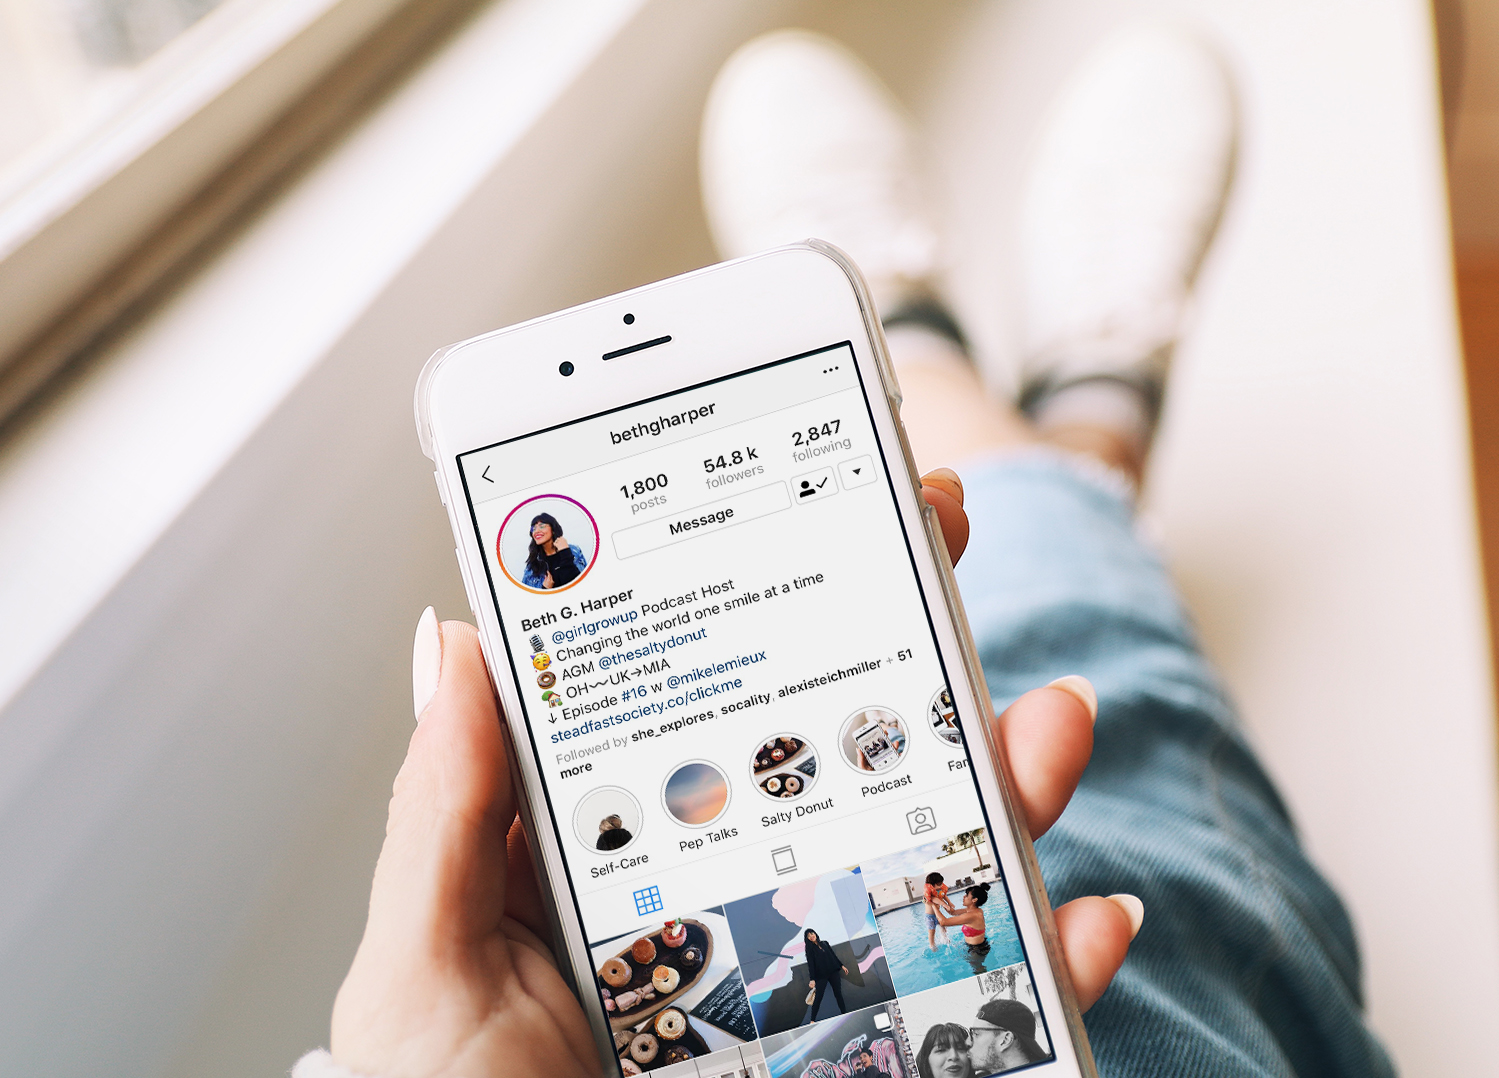 INFLUENCE with instagram - Want to stand-out on Instagram? You're just itchin' to share more about your blog or business online. This little app can be so much fun and really take you ideas places. I'll help you become influential on Instagram.